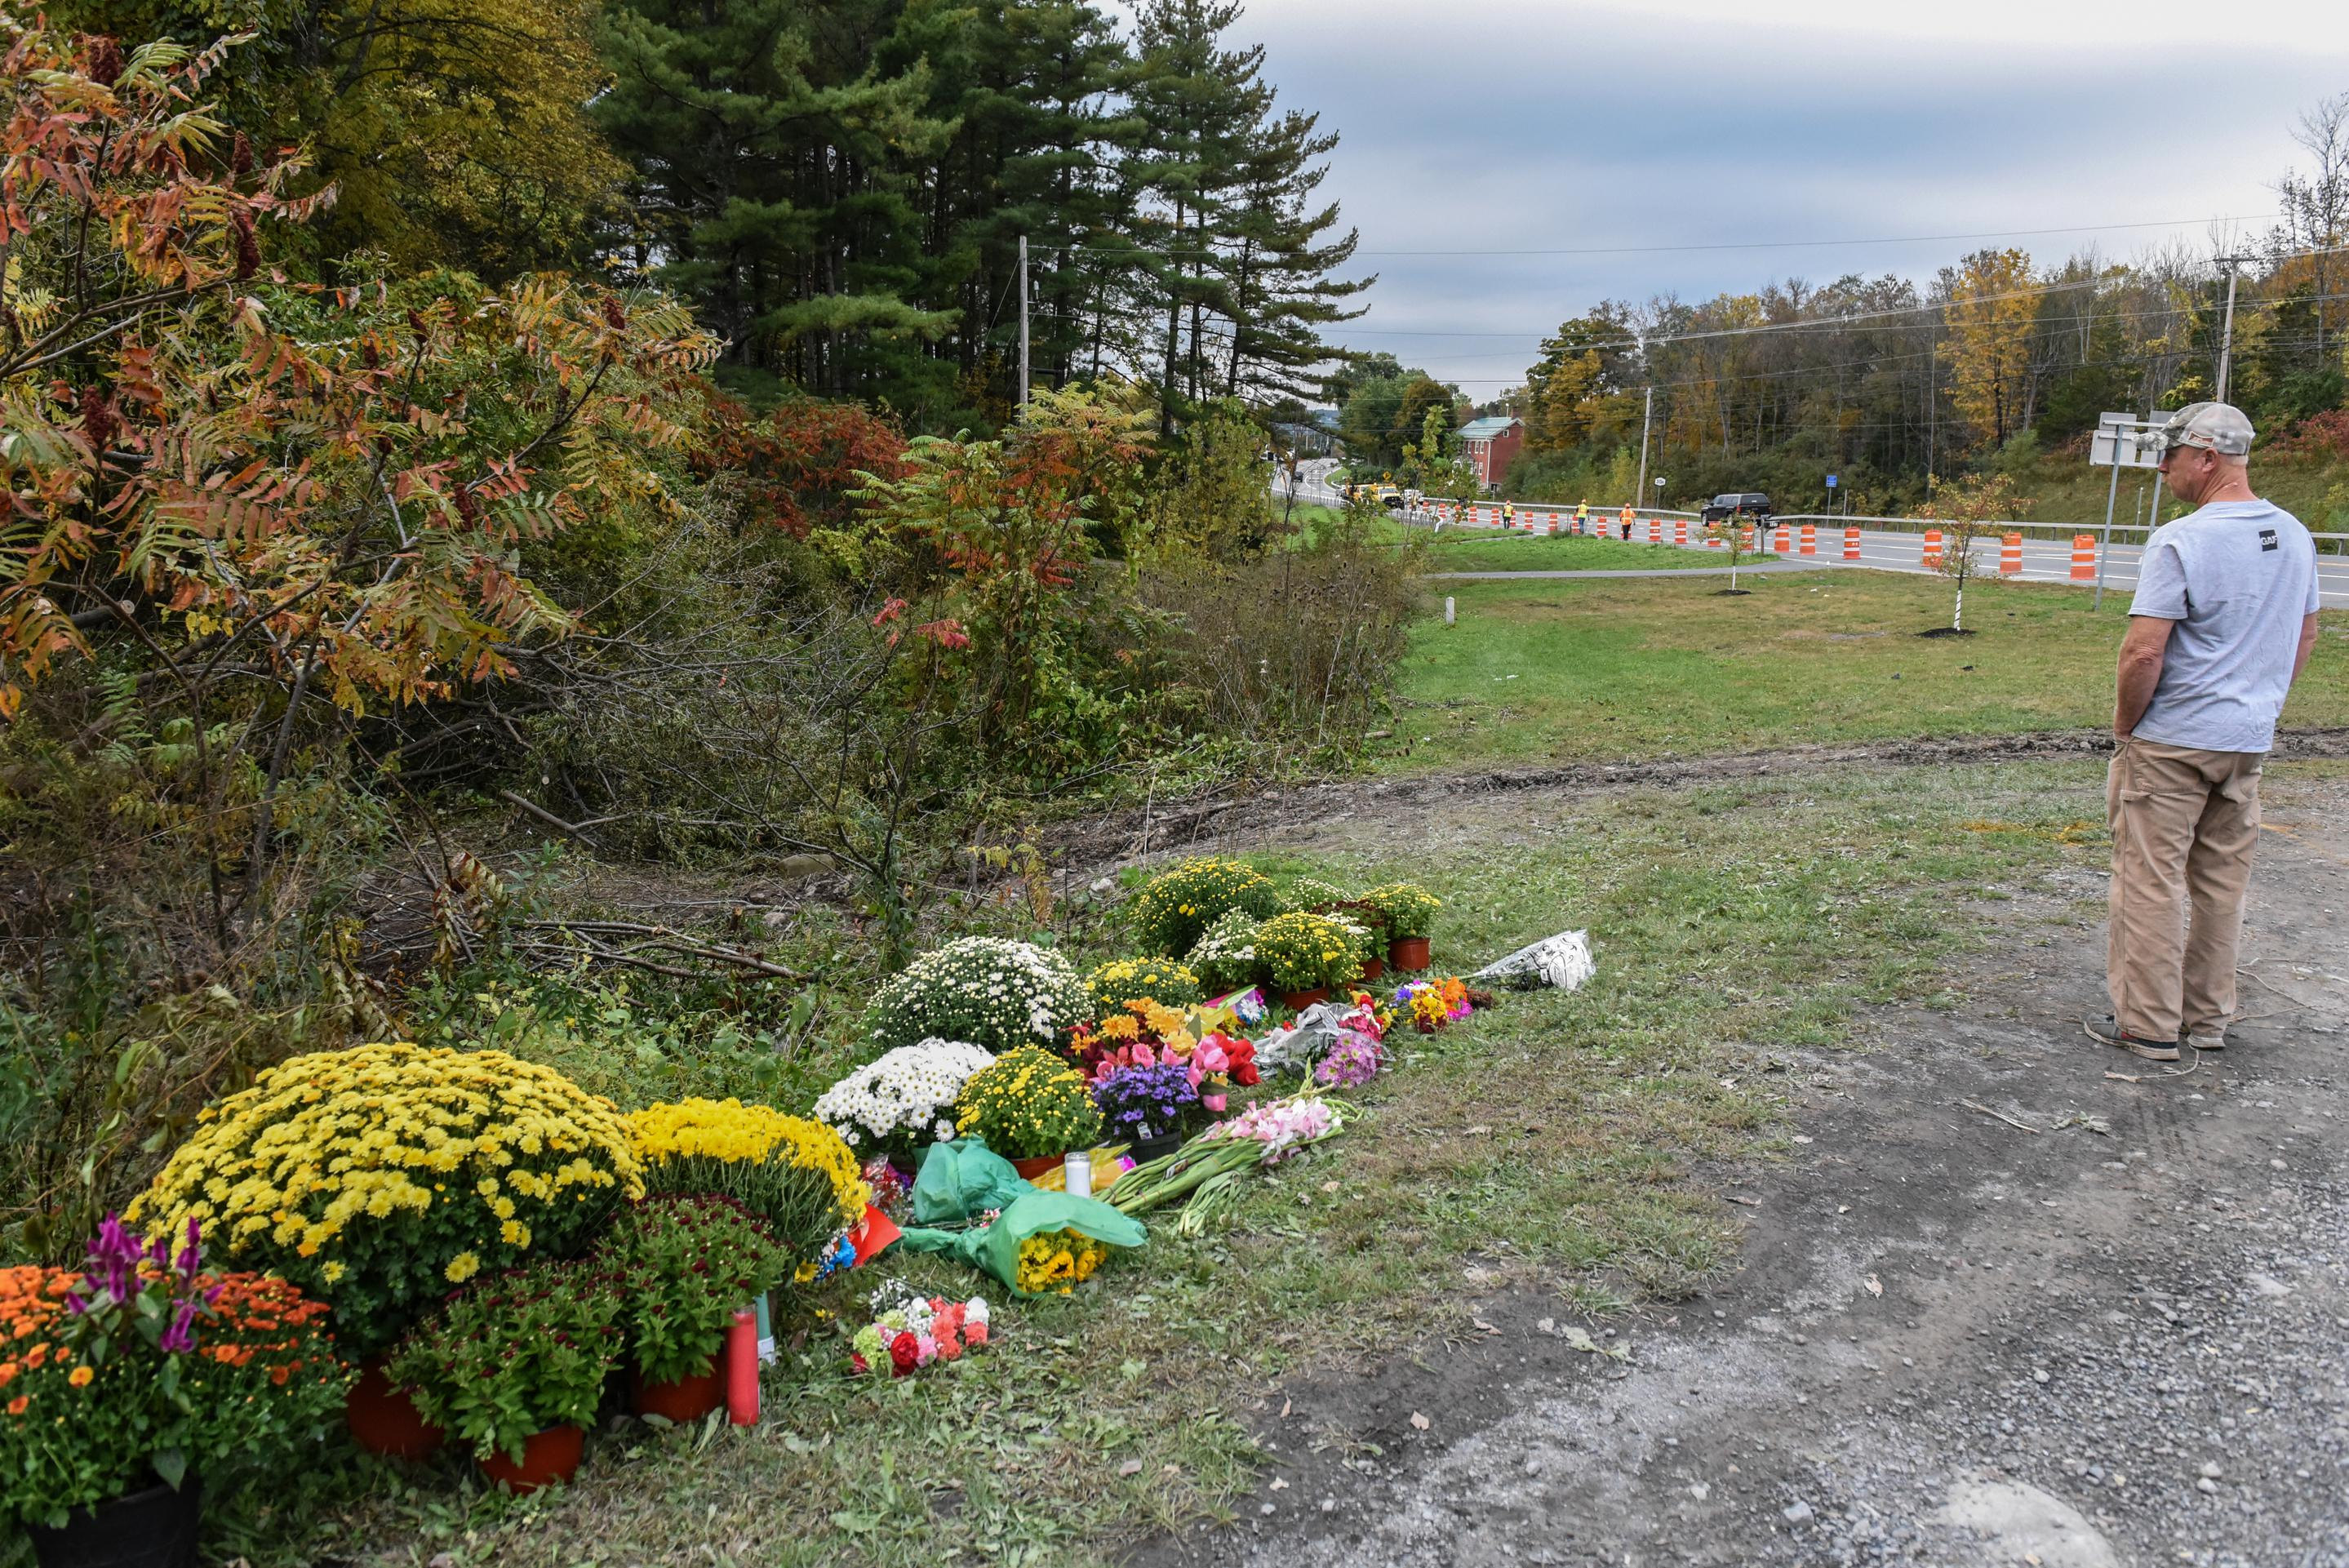 A man looking from the roadside onto a makeshift memorial of flowers.